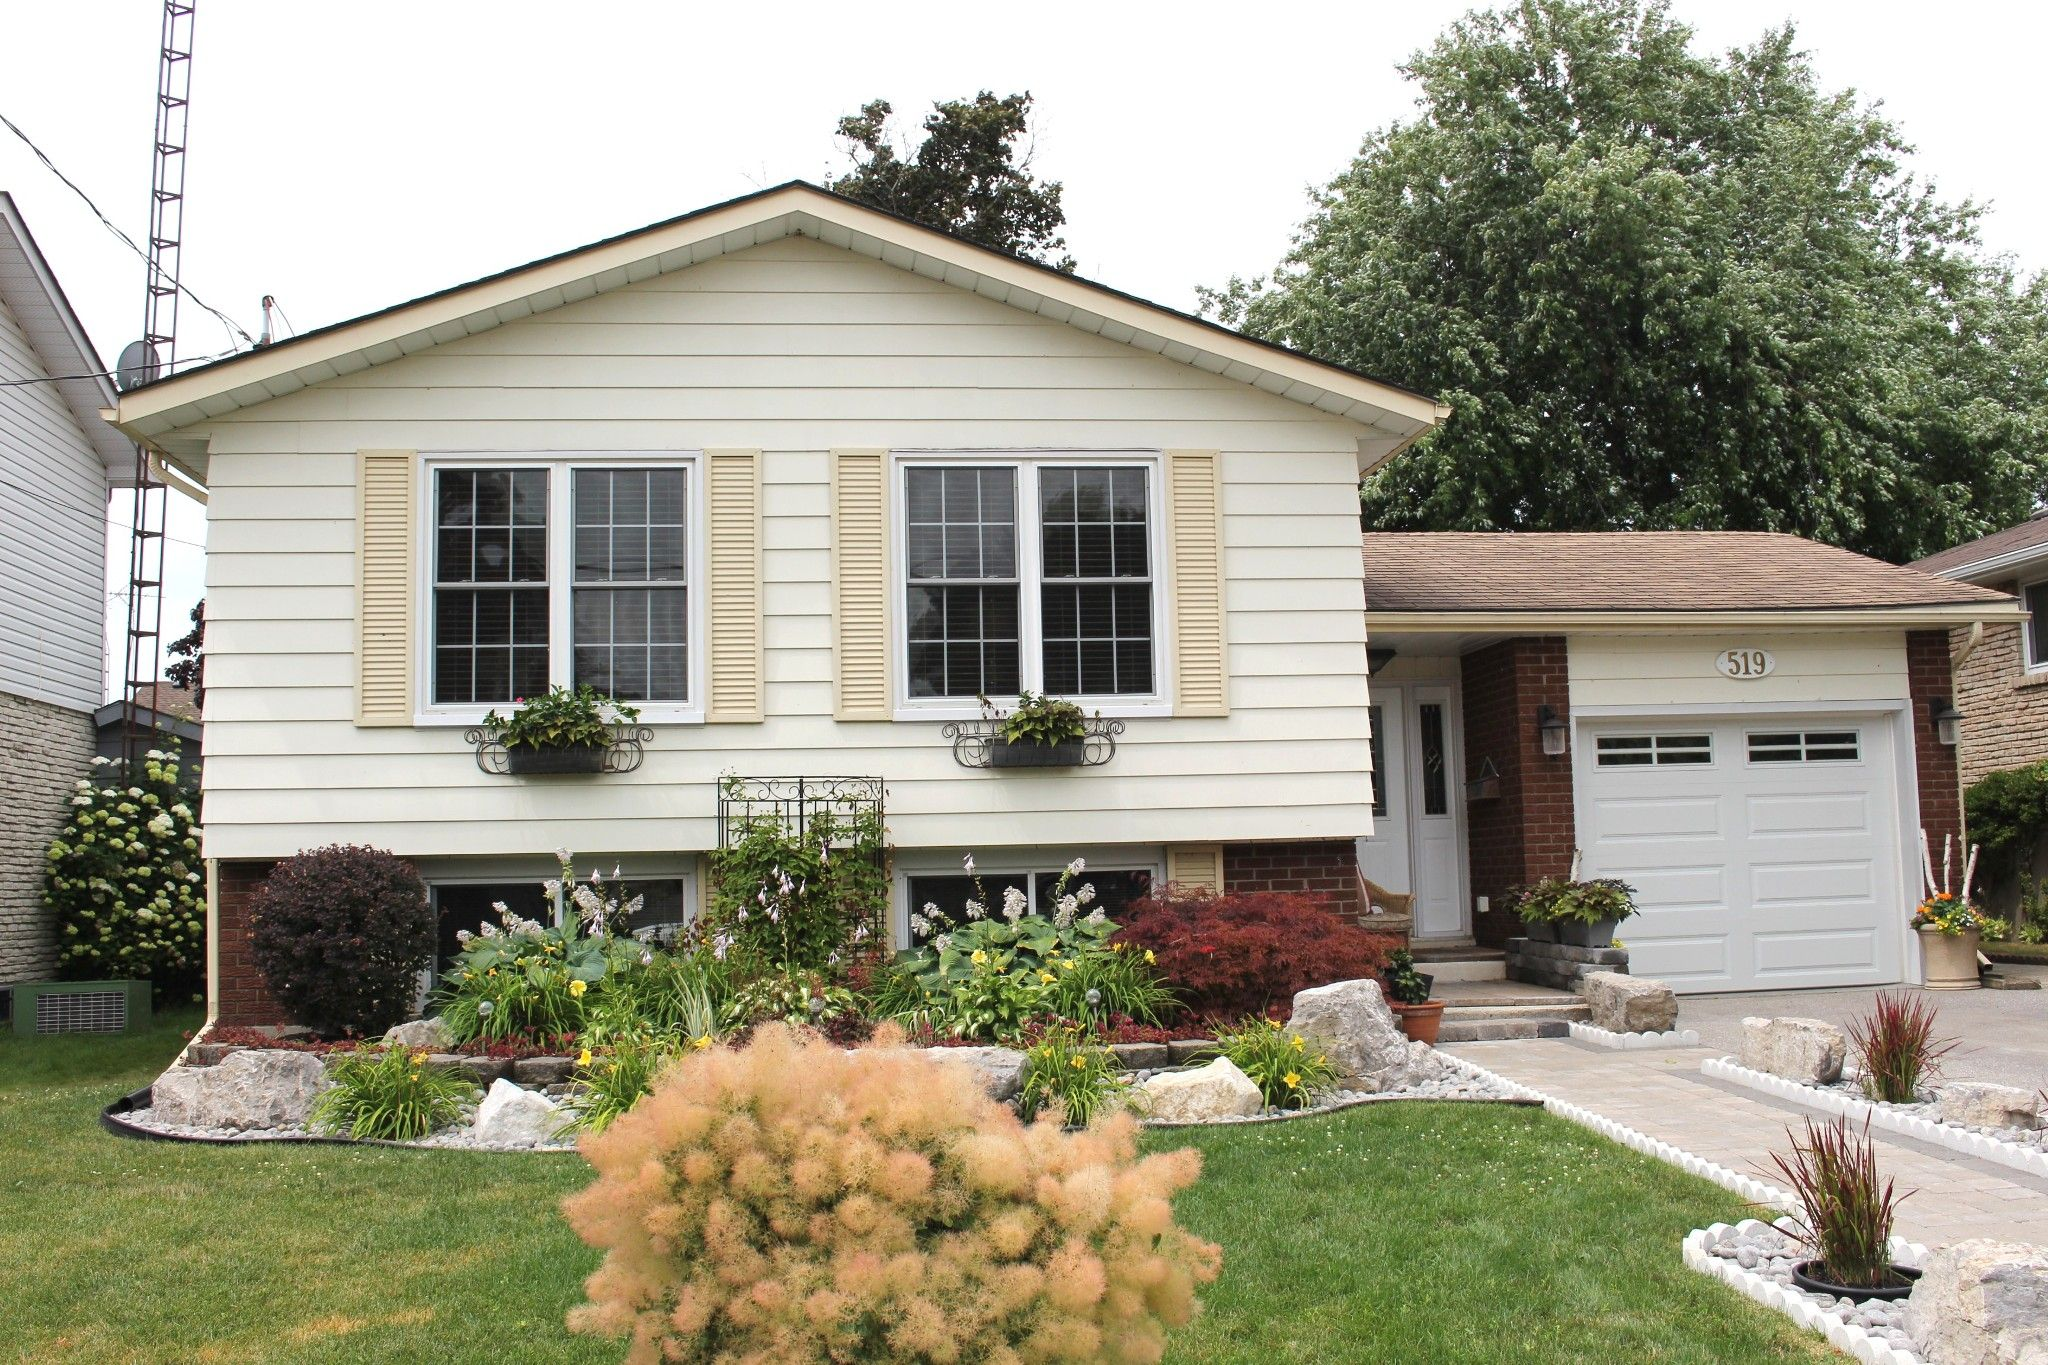 Main Photo: 519 Westwood Drive in Cobourg: House for sale : MLS®# 200373